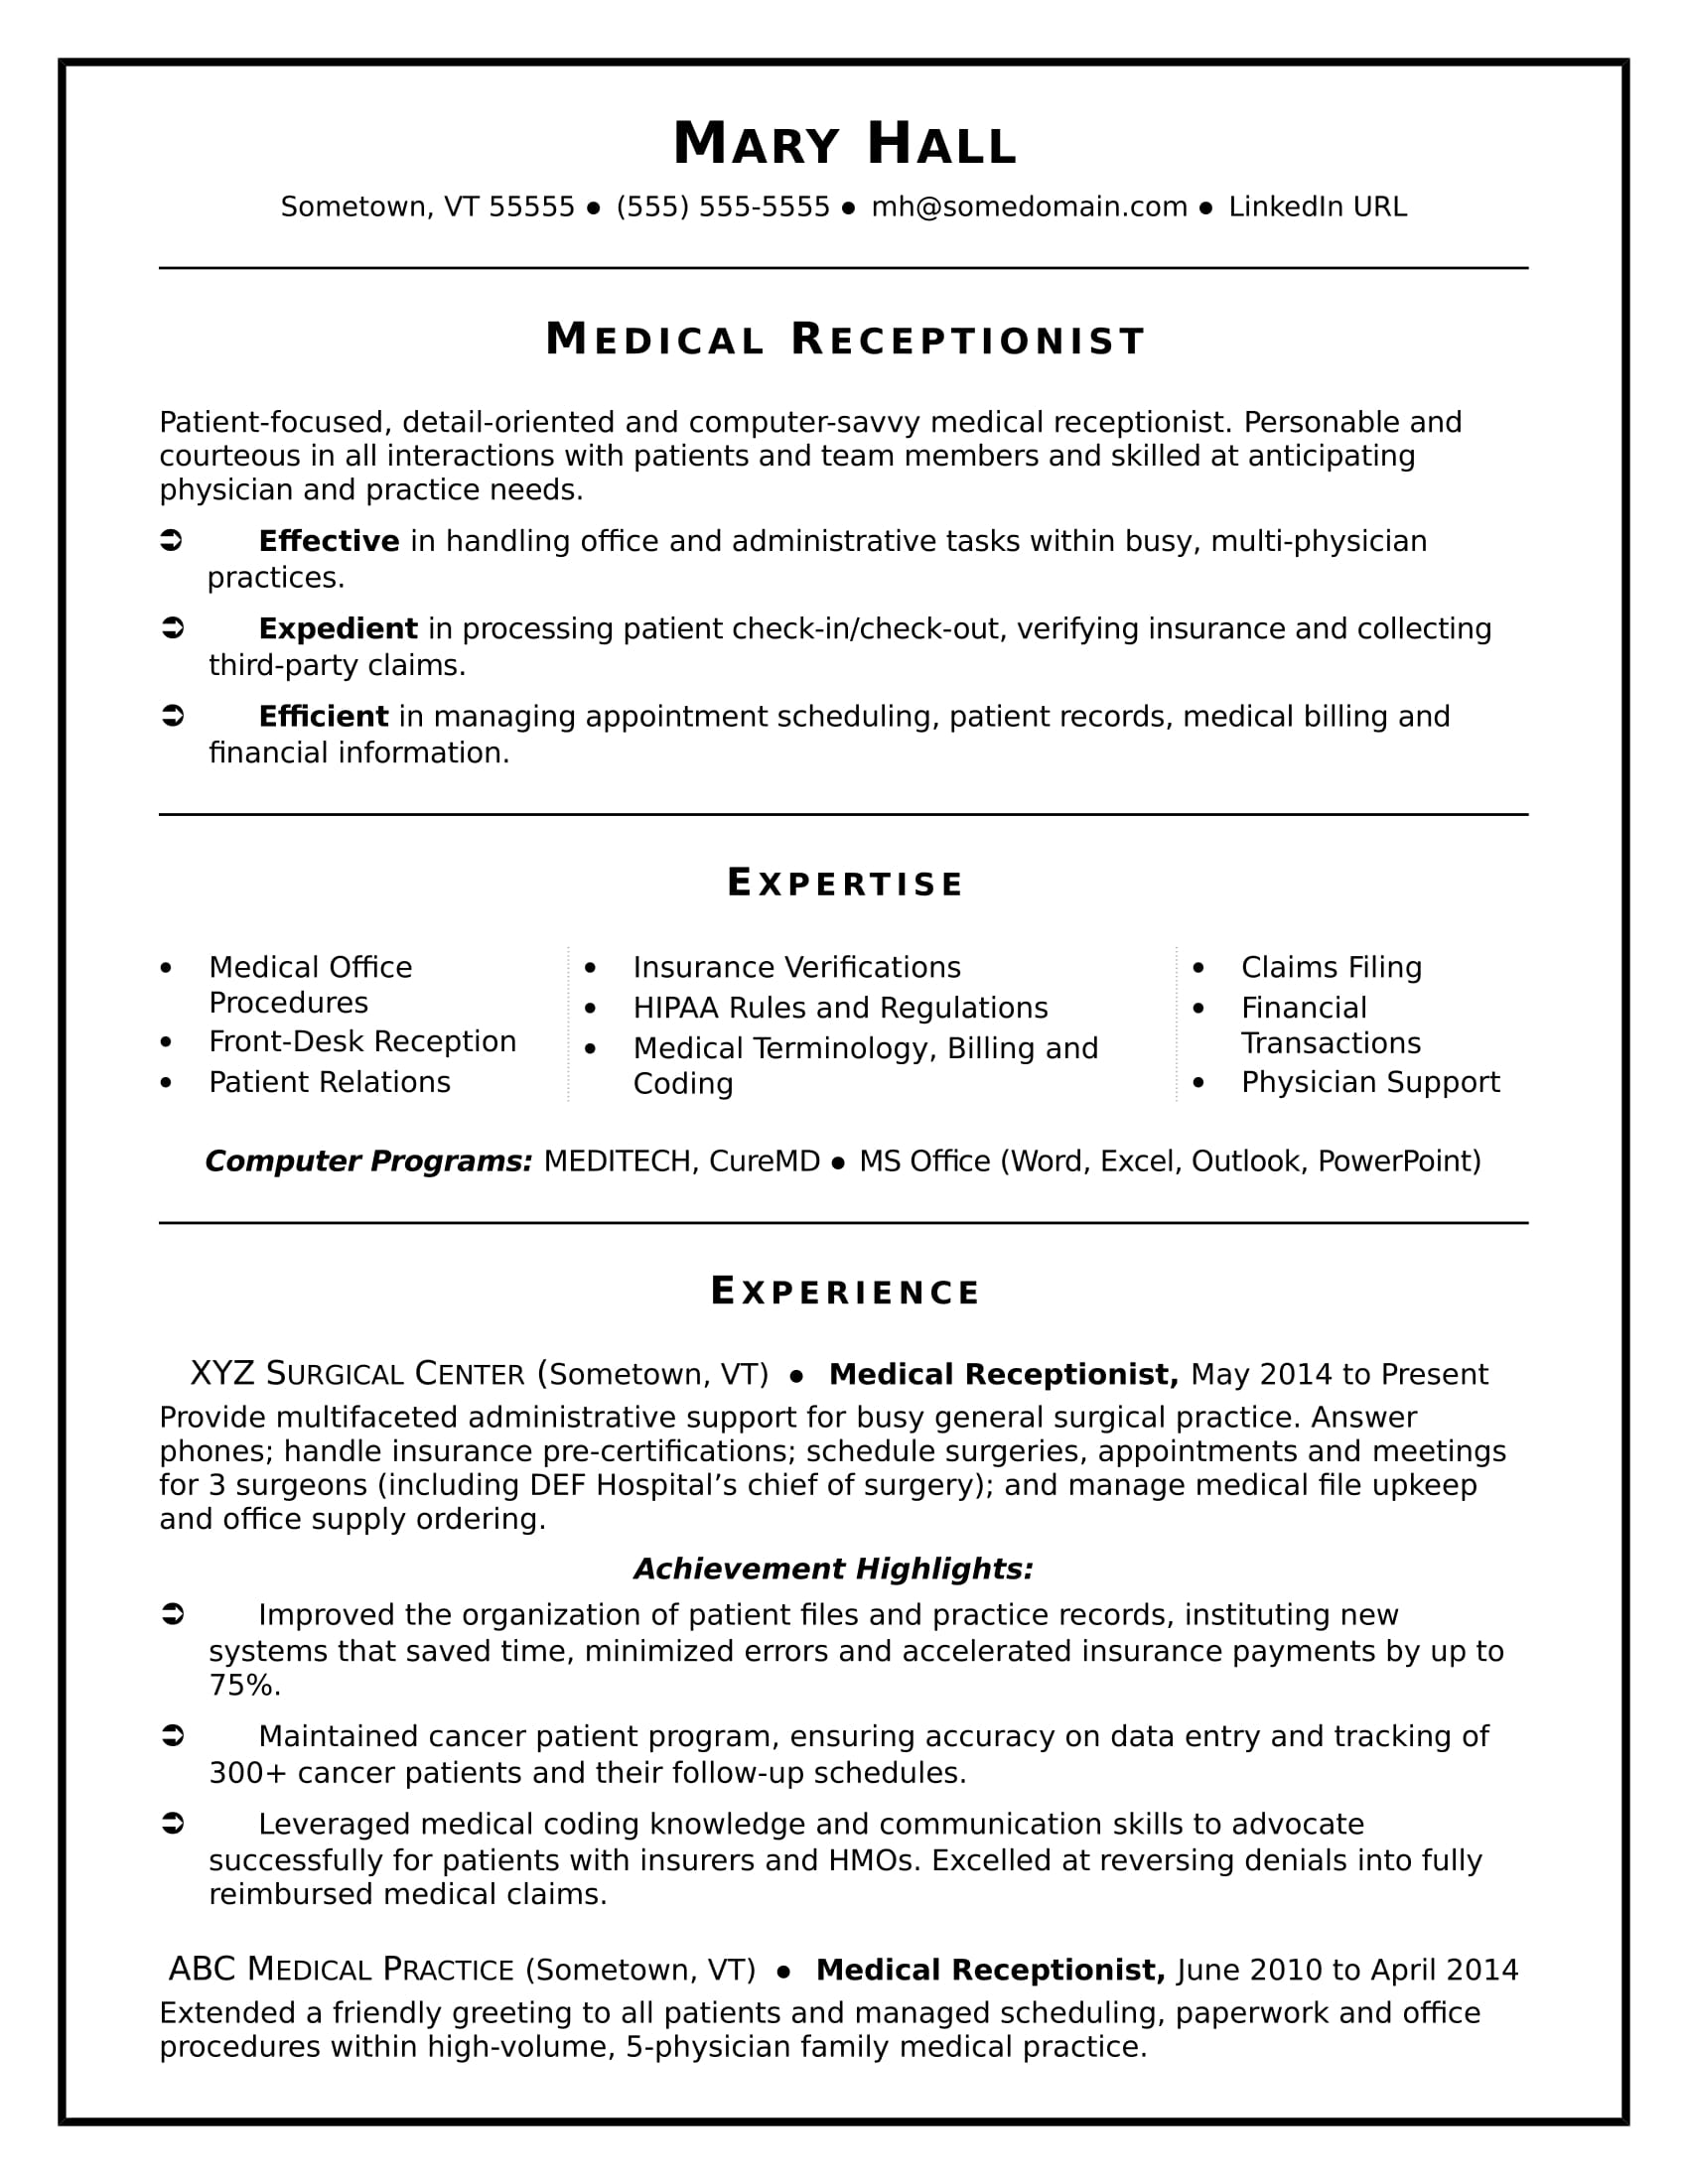 medical receptionist resume sample - Resume Improved